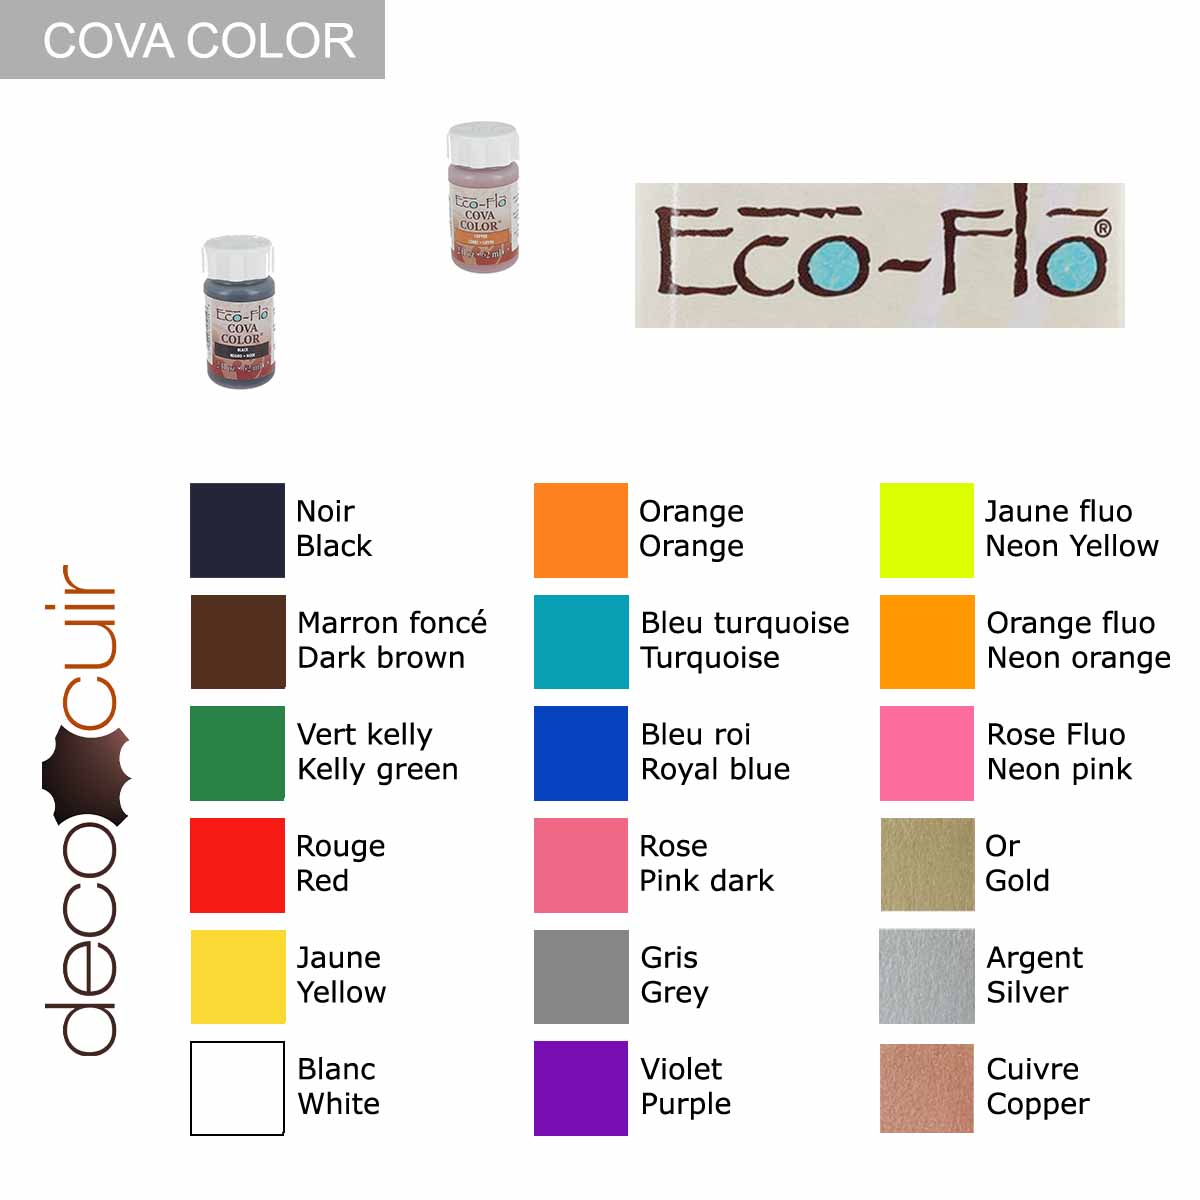 Peinture opaque à base d'eau - PHOSPHORESCENT - Cova Color Eco Flo n°50